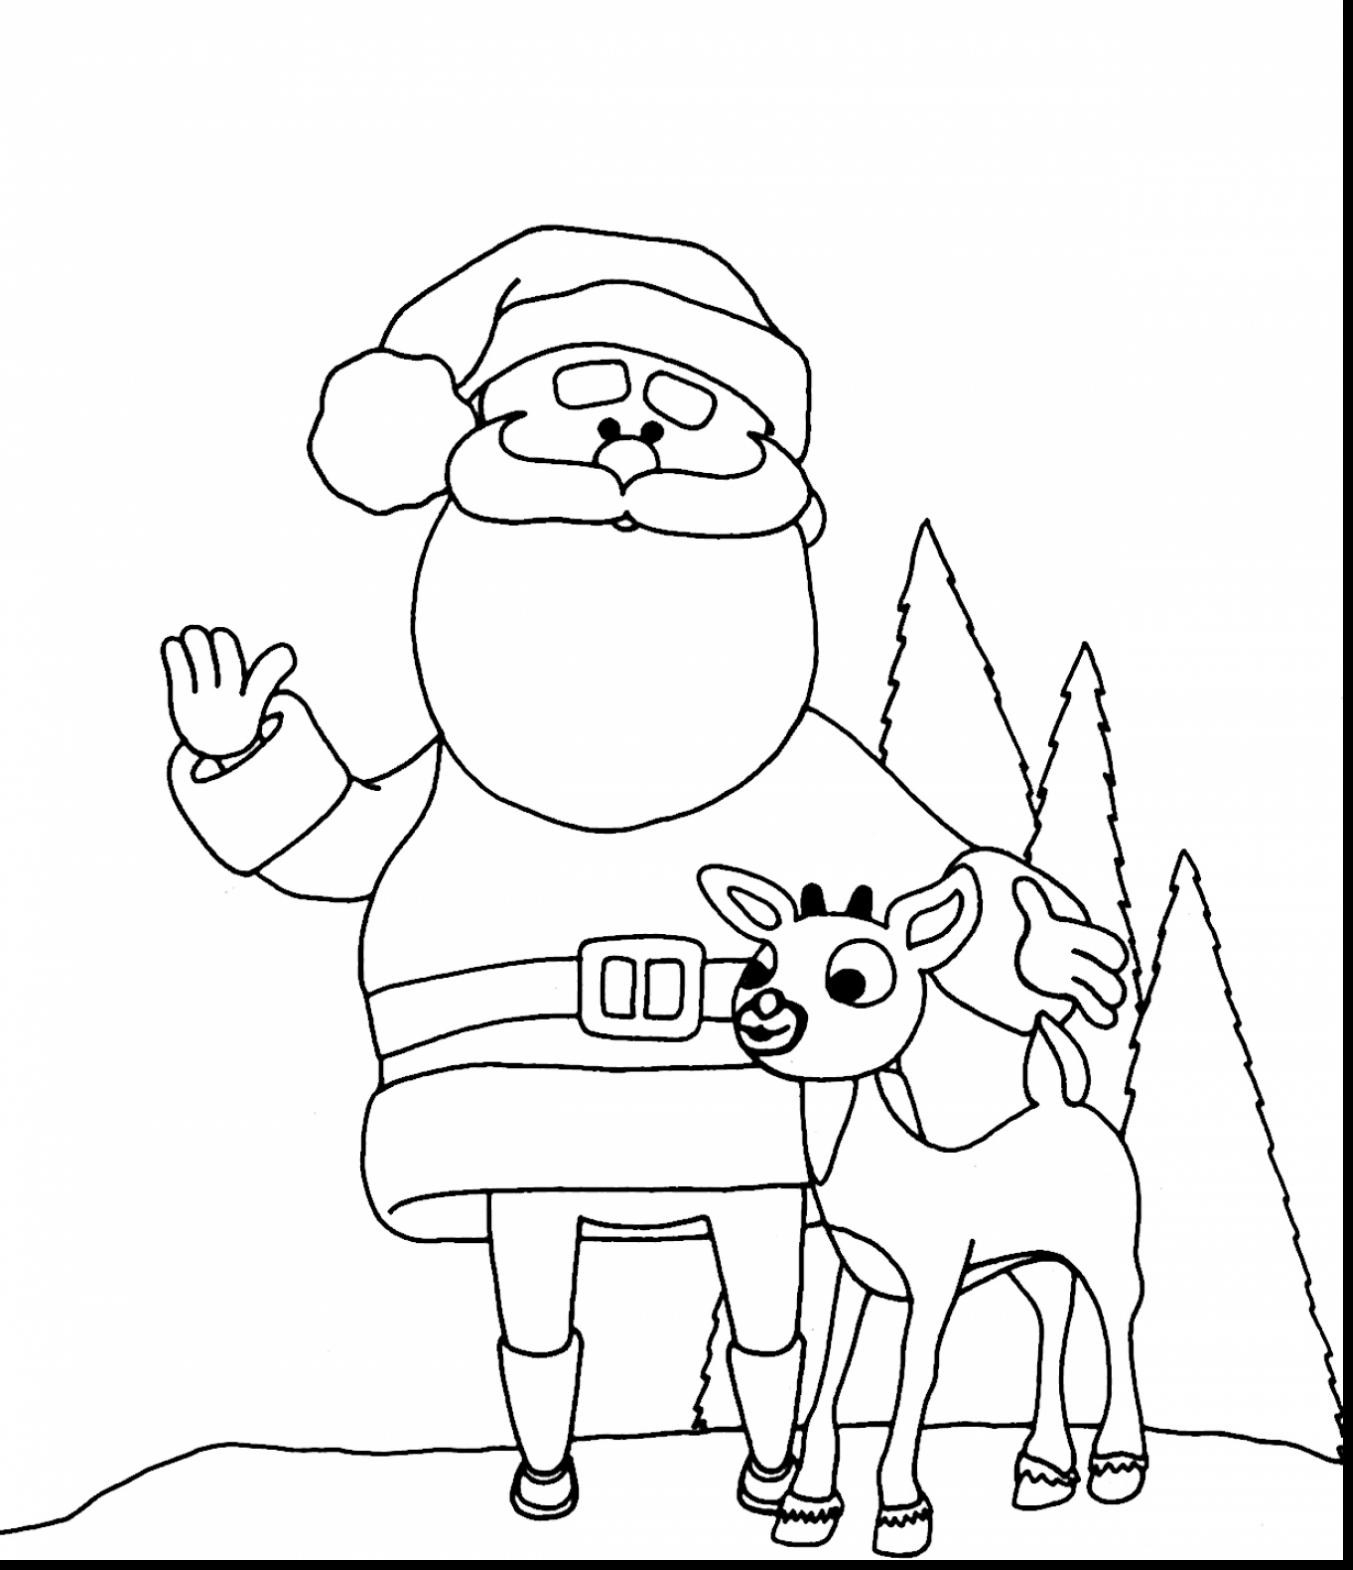 Santa Claus And Rudolph Coloring Pages With The Red Nosed Reindeer To Print Free